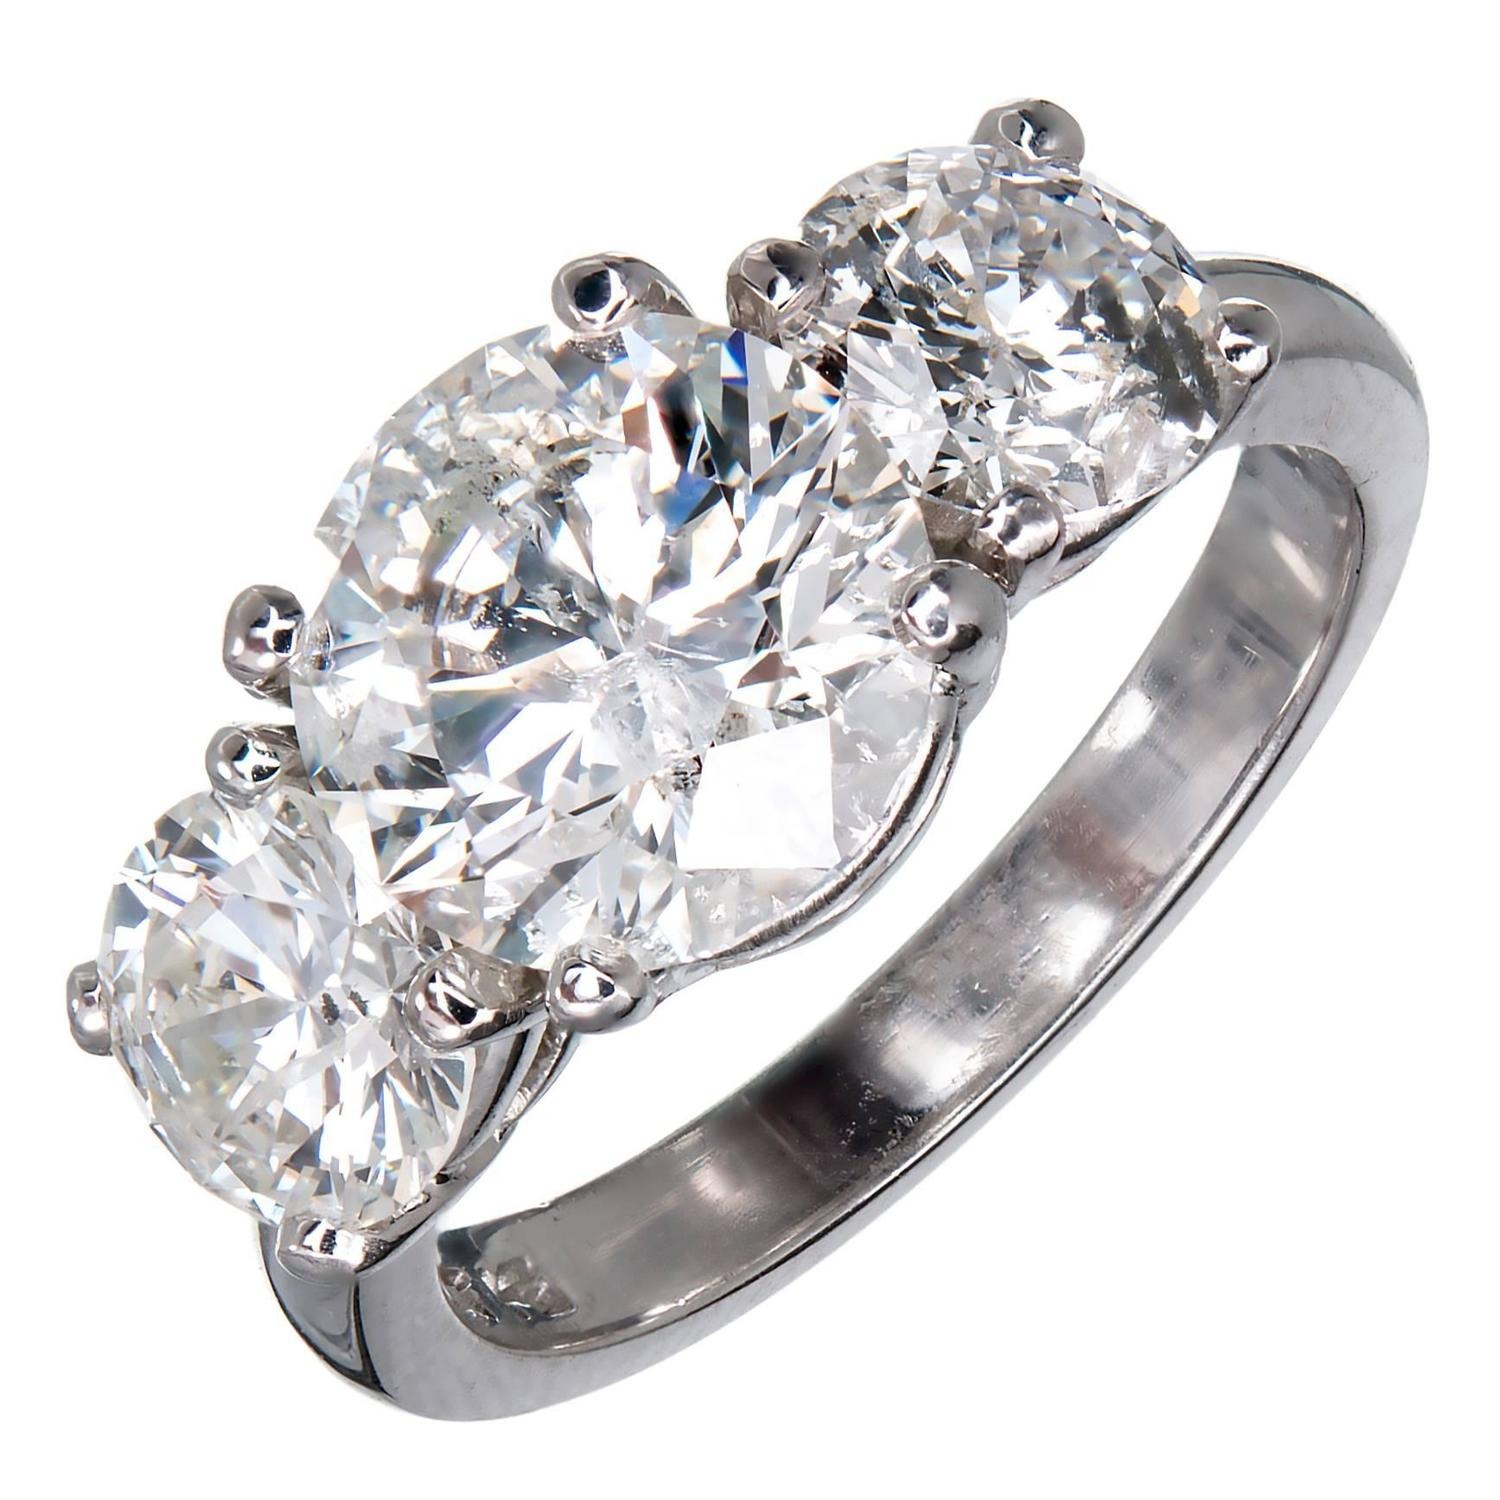 Vintage wedding rings new york - An Error Occurred